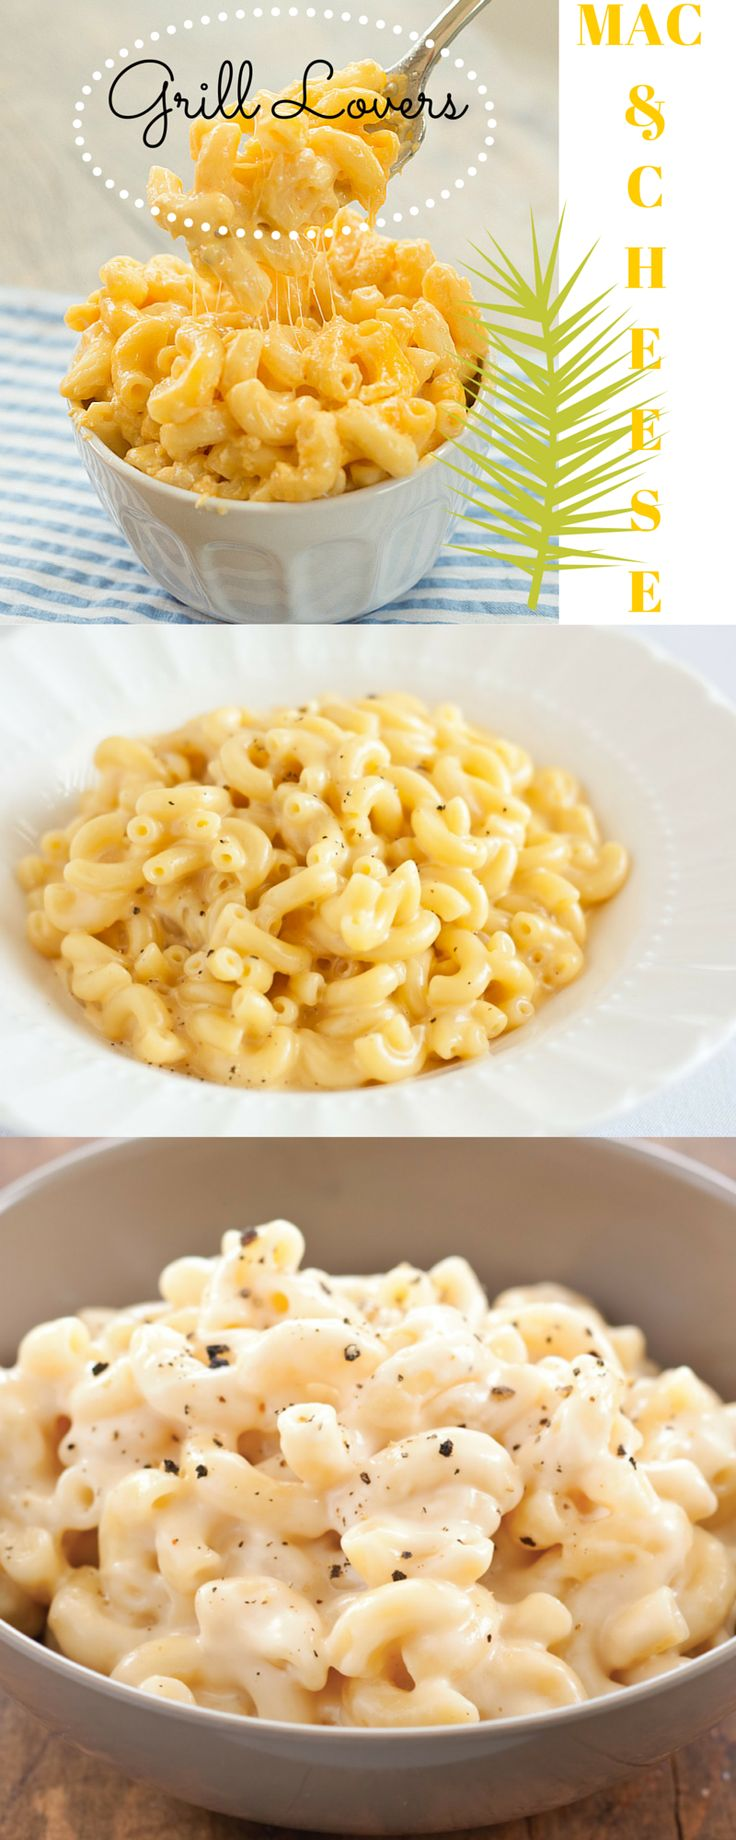 PrintGrill Lovers' Pressure Cooker Mac and Cheese Recipe (Ready in about 20 minutes | Servings 6) Ingredients• 3 cups macaroni of choice • 1 cup water • 2 cups vegetable broth • 2 tablespoons butter • Sea salt and ground white pepper, to taste • 1 cup Ricotta cheese • 2 cups Cheddar cheese, shreddedInstructionsAdd[...]